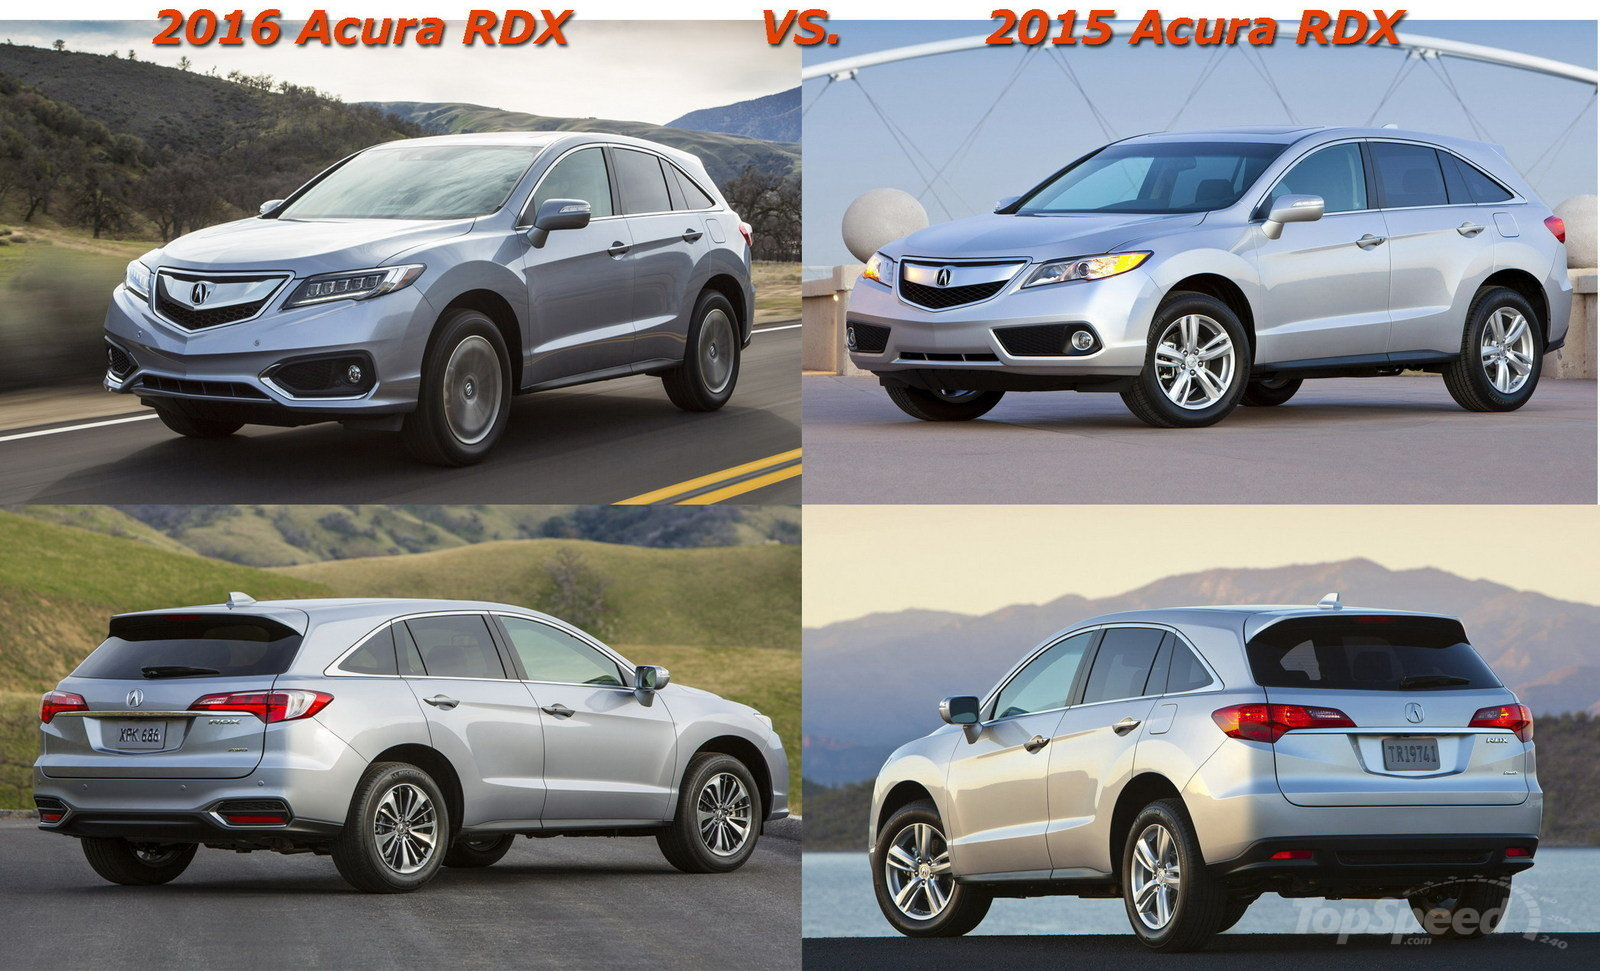 awd evolved notice elite news by take the into certainly i quite that carcostcanada test latest of models turner drives when rdx and acura head review has one gallery road